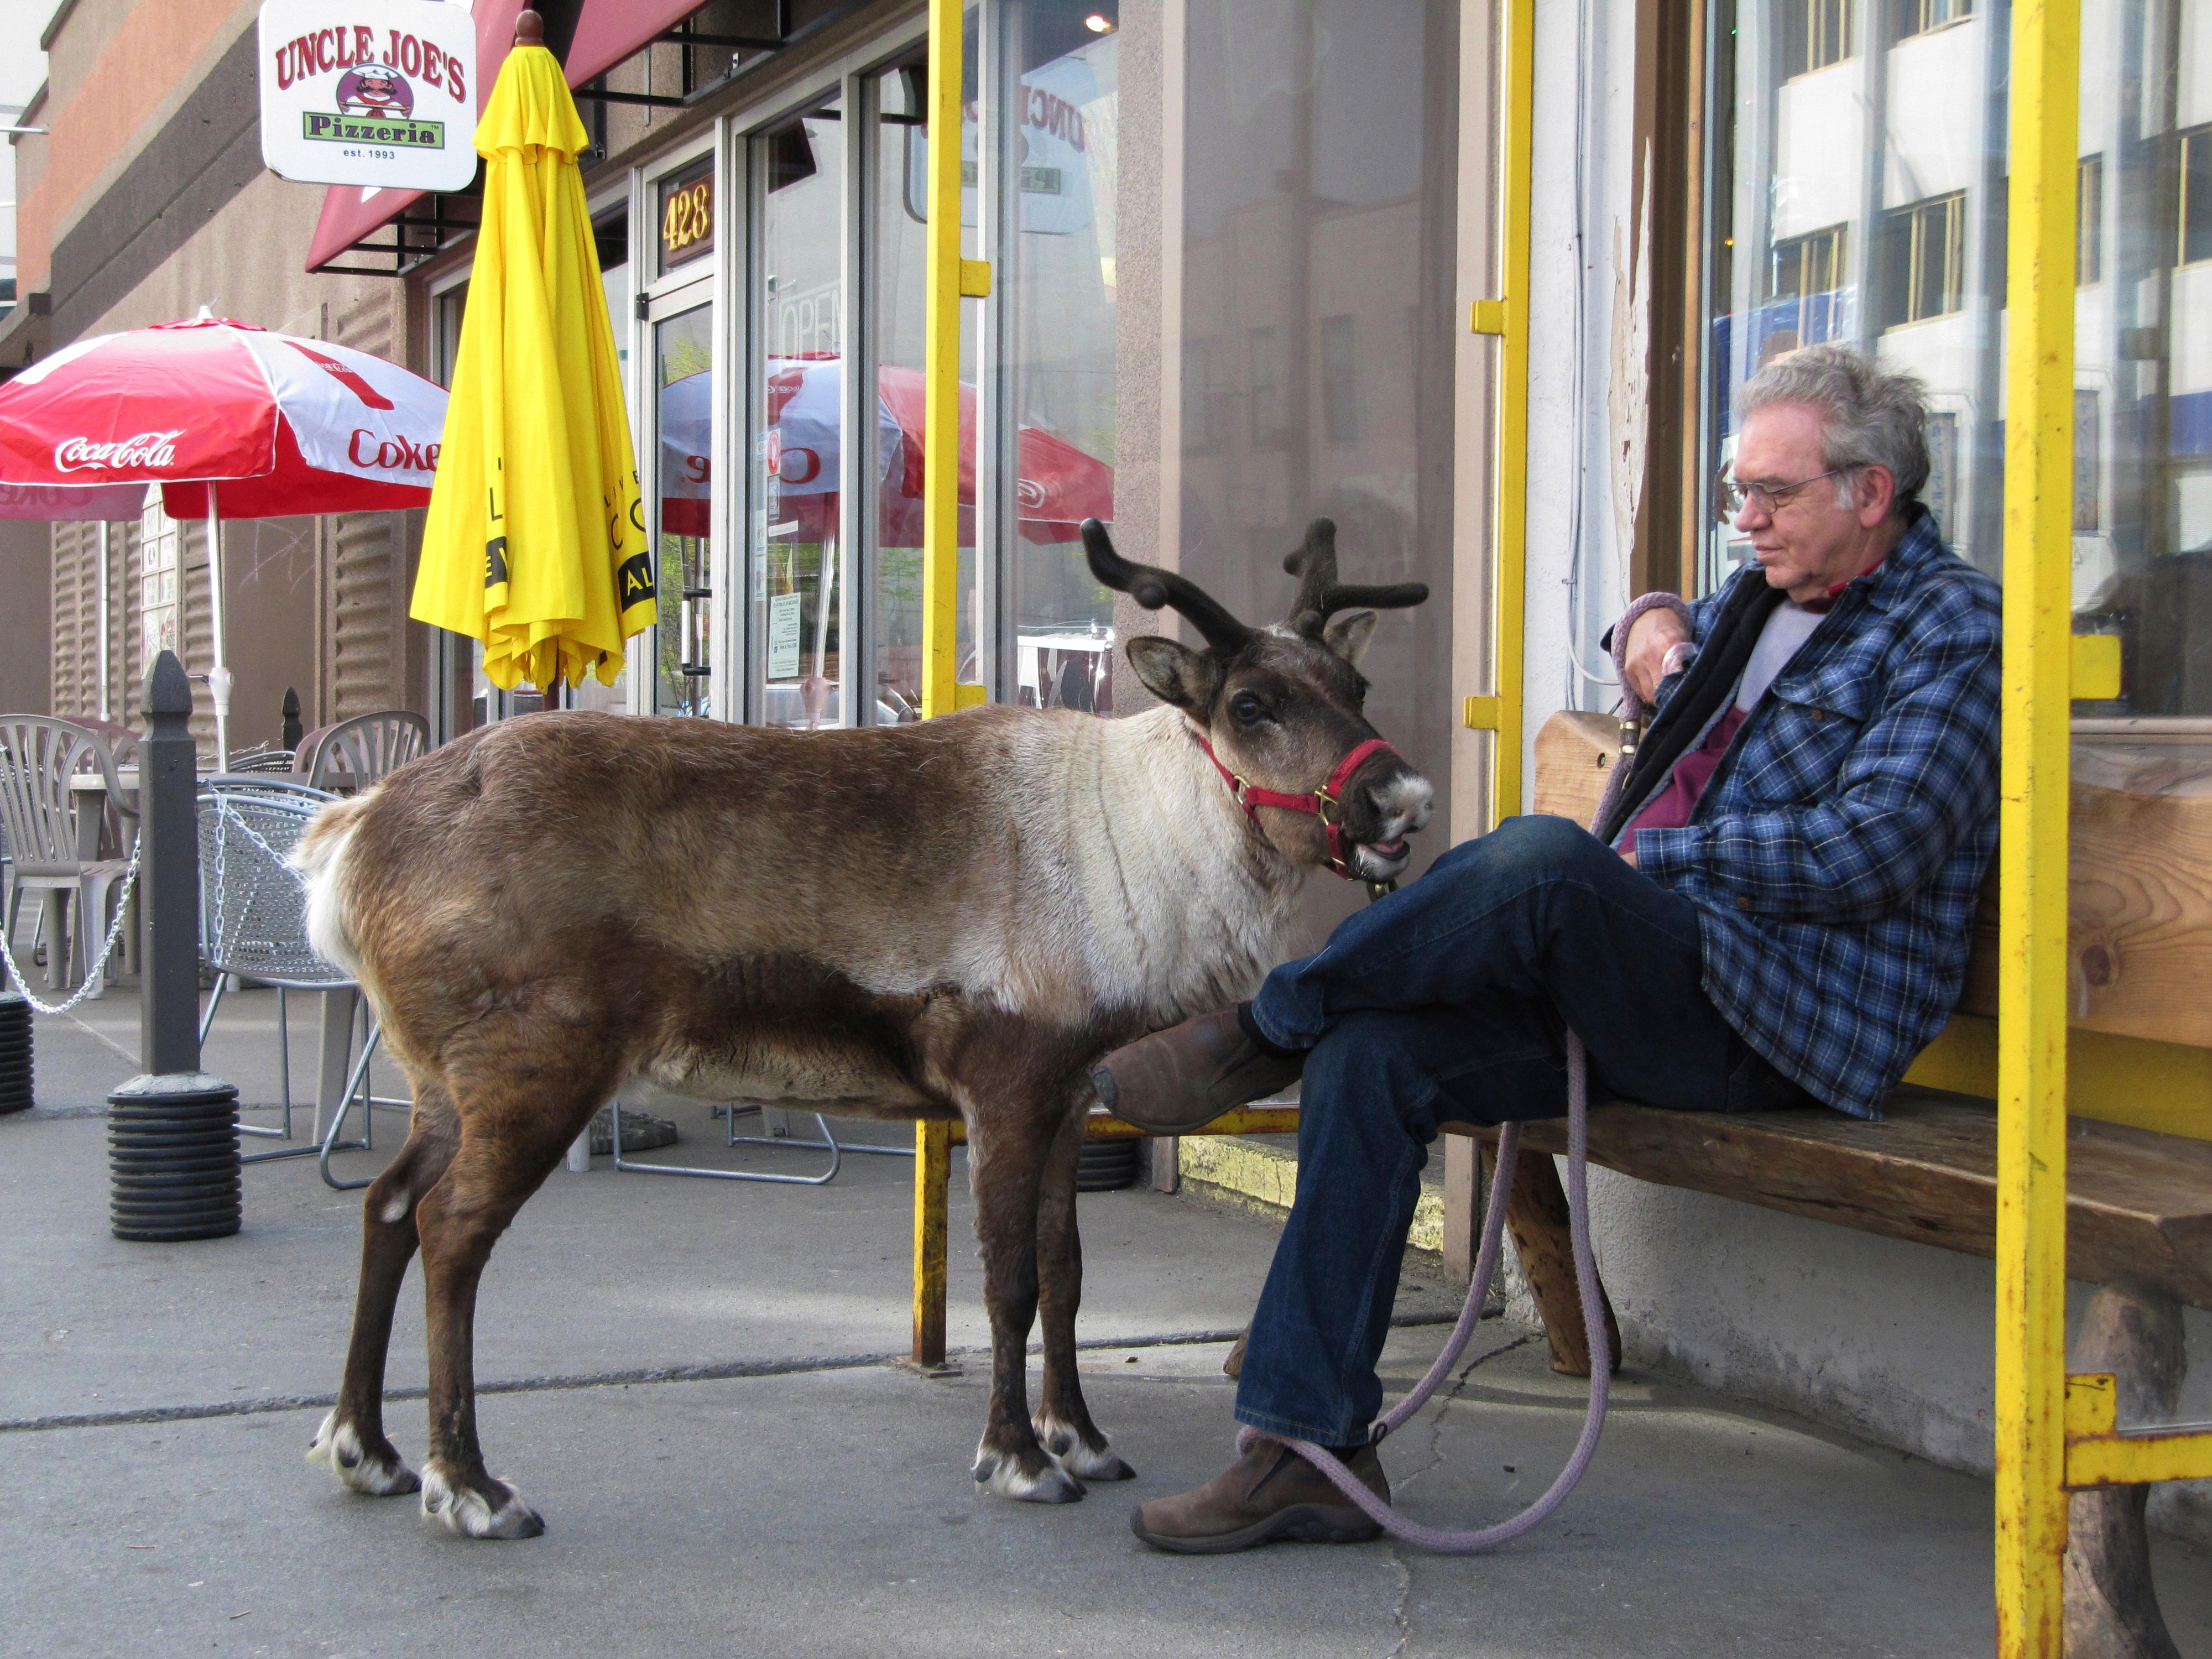 FILE - This May 23, 2010, file photo shows Star the reindeer and her owner, Albert Whitehead, taking a break during a stroll through downtown Anchorage, Alaska. The 15-year-old reindeer, the sixth of a line of local pet reindeer died Saturday, Oct. 7, 2017. (AP Photo/Rachel D'Oro, File)